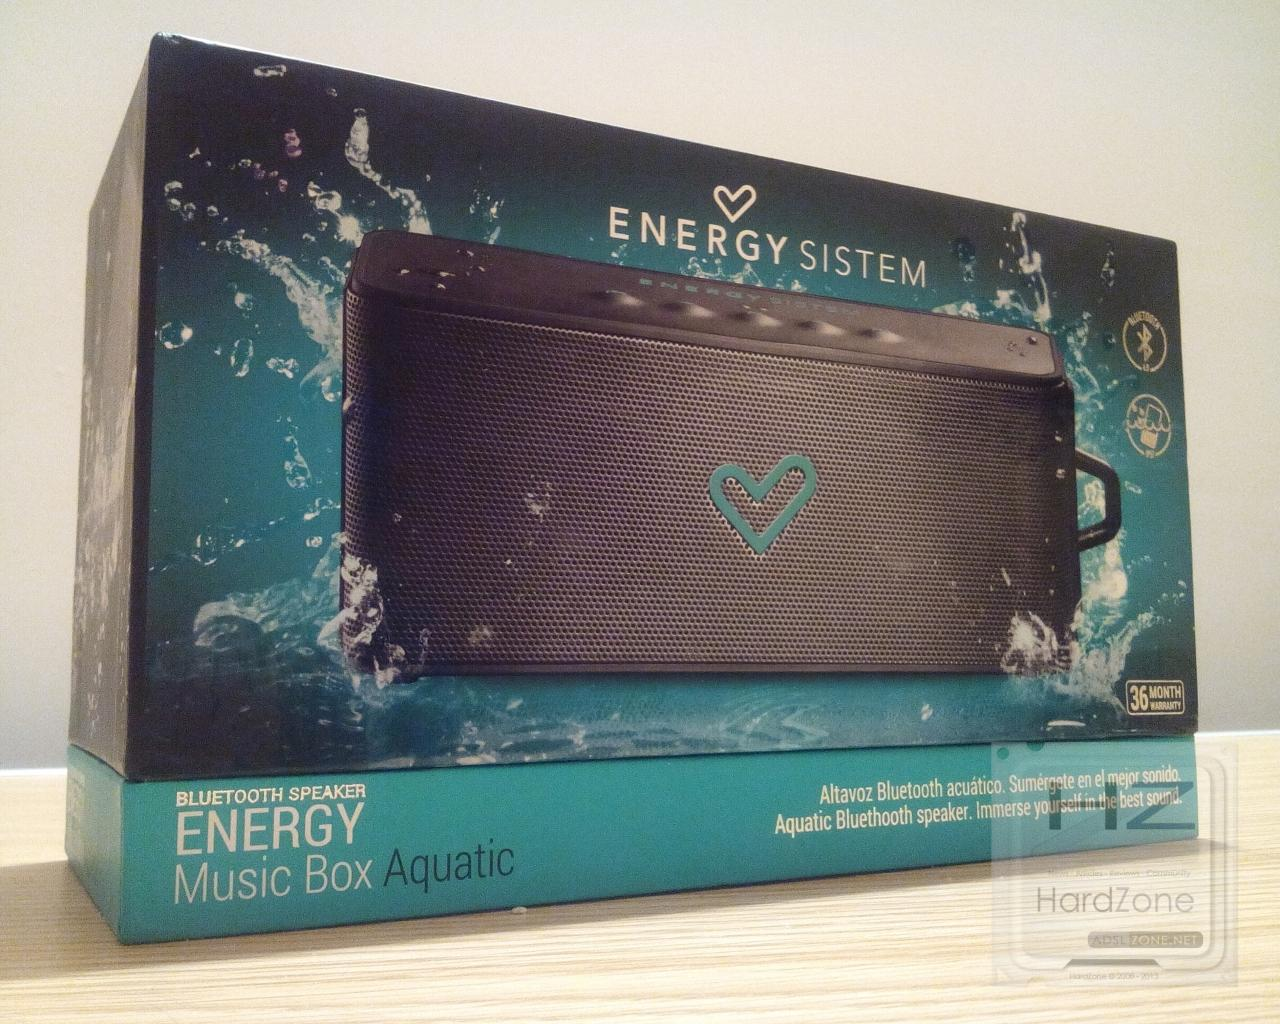 Energy Sistem MuxicBox Aquatic_001